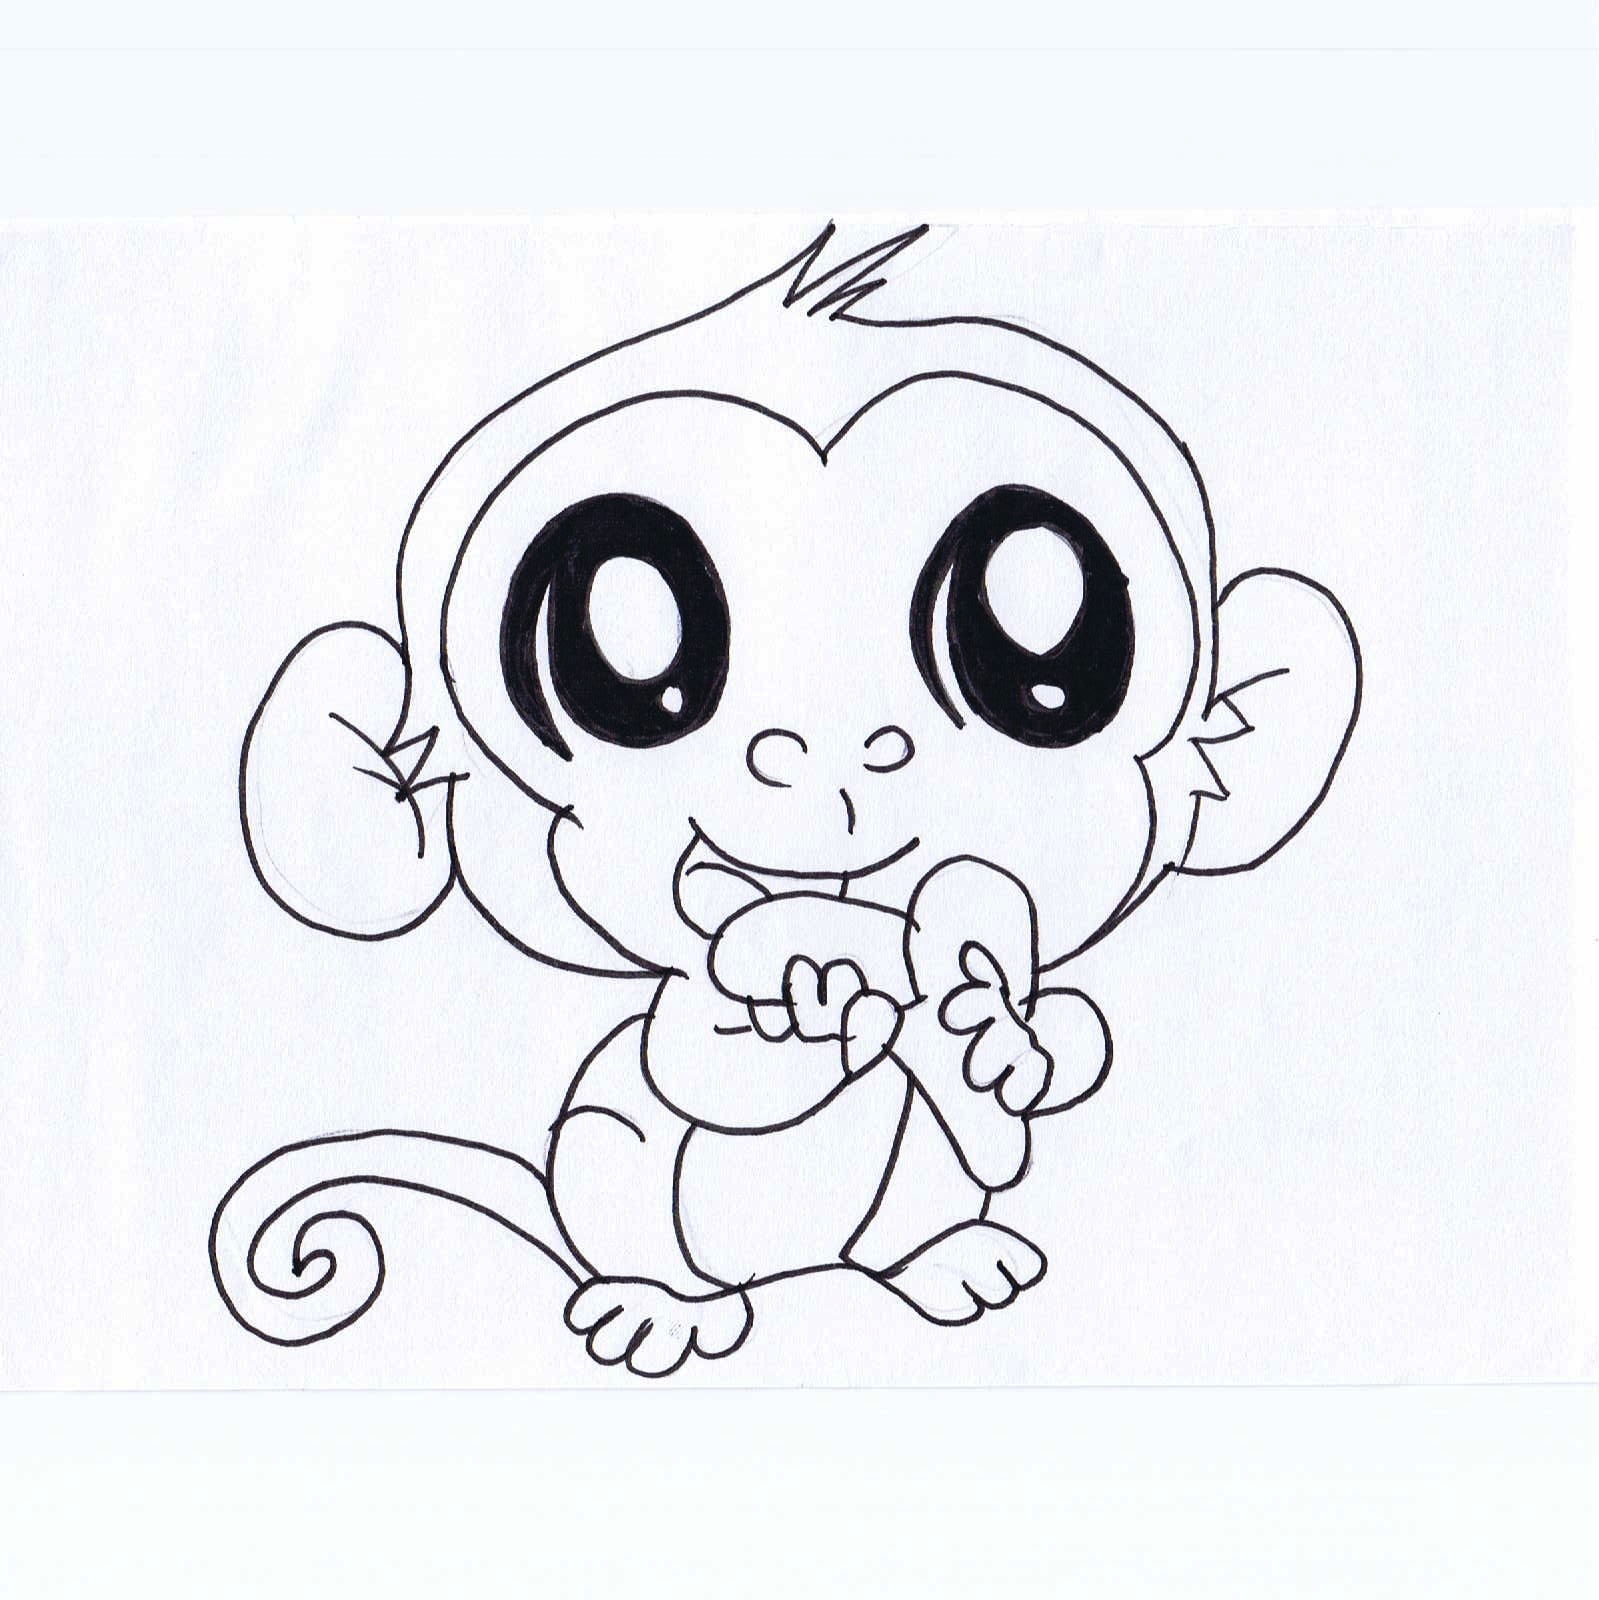 1599x1600 Drawing Cartoon Animals With Big Eyes Cute Monkey Drawing Free